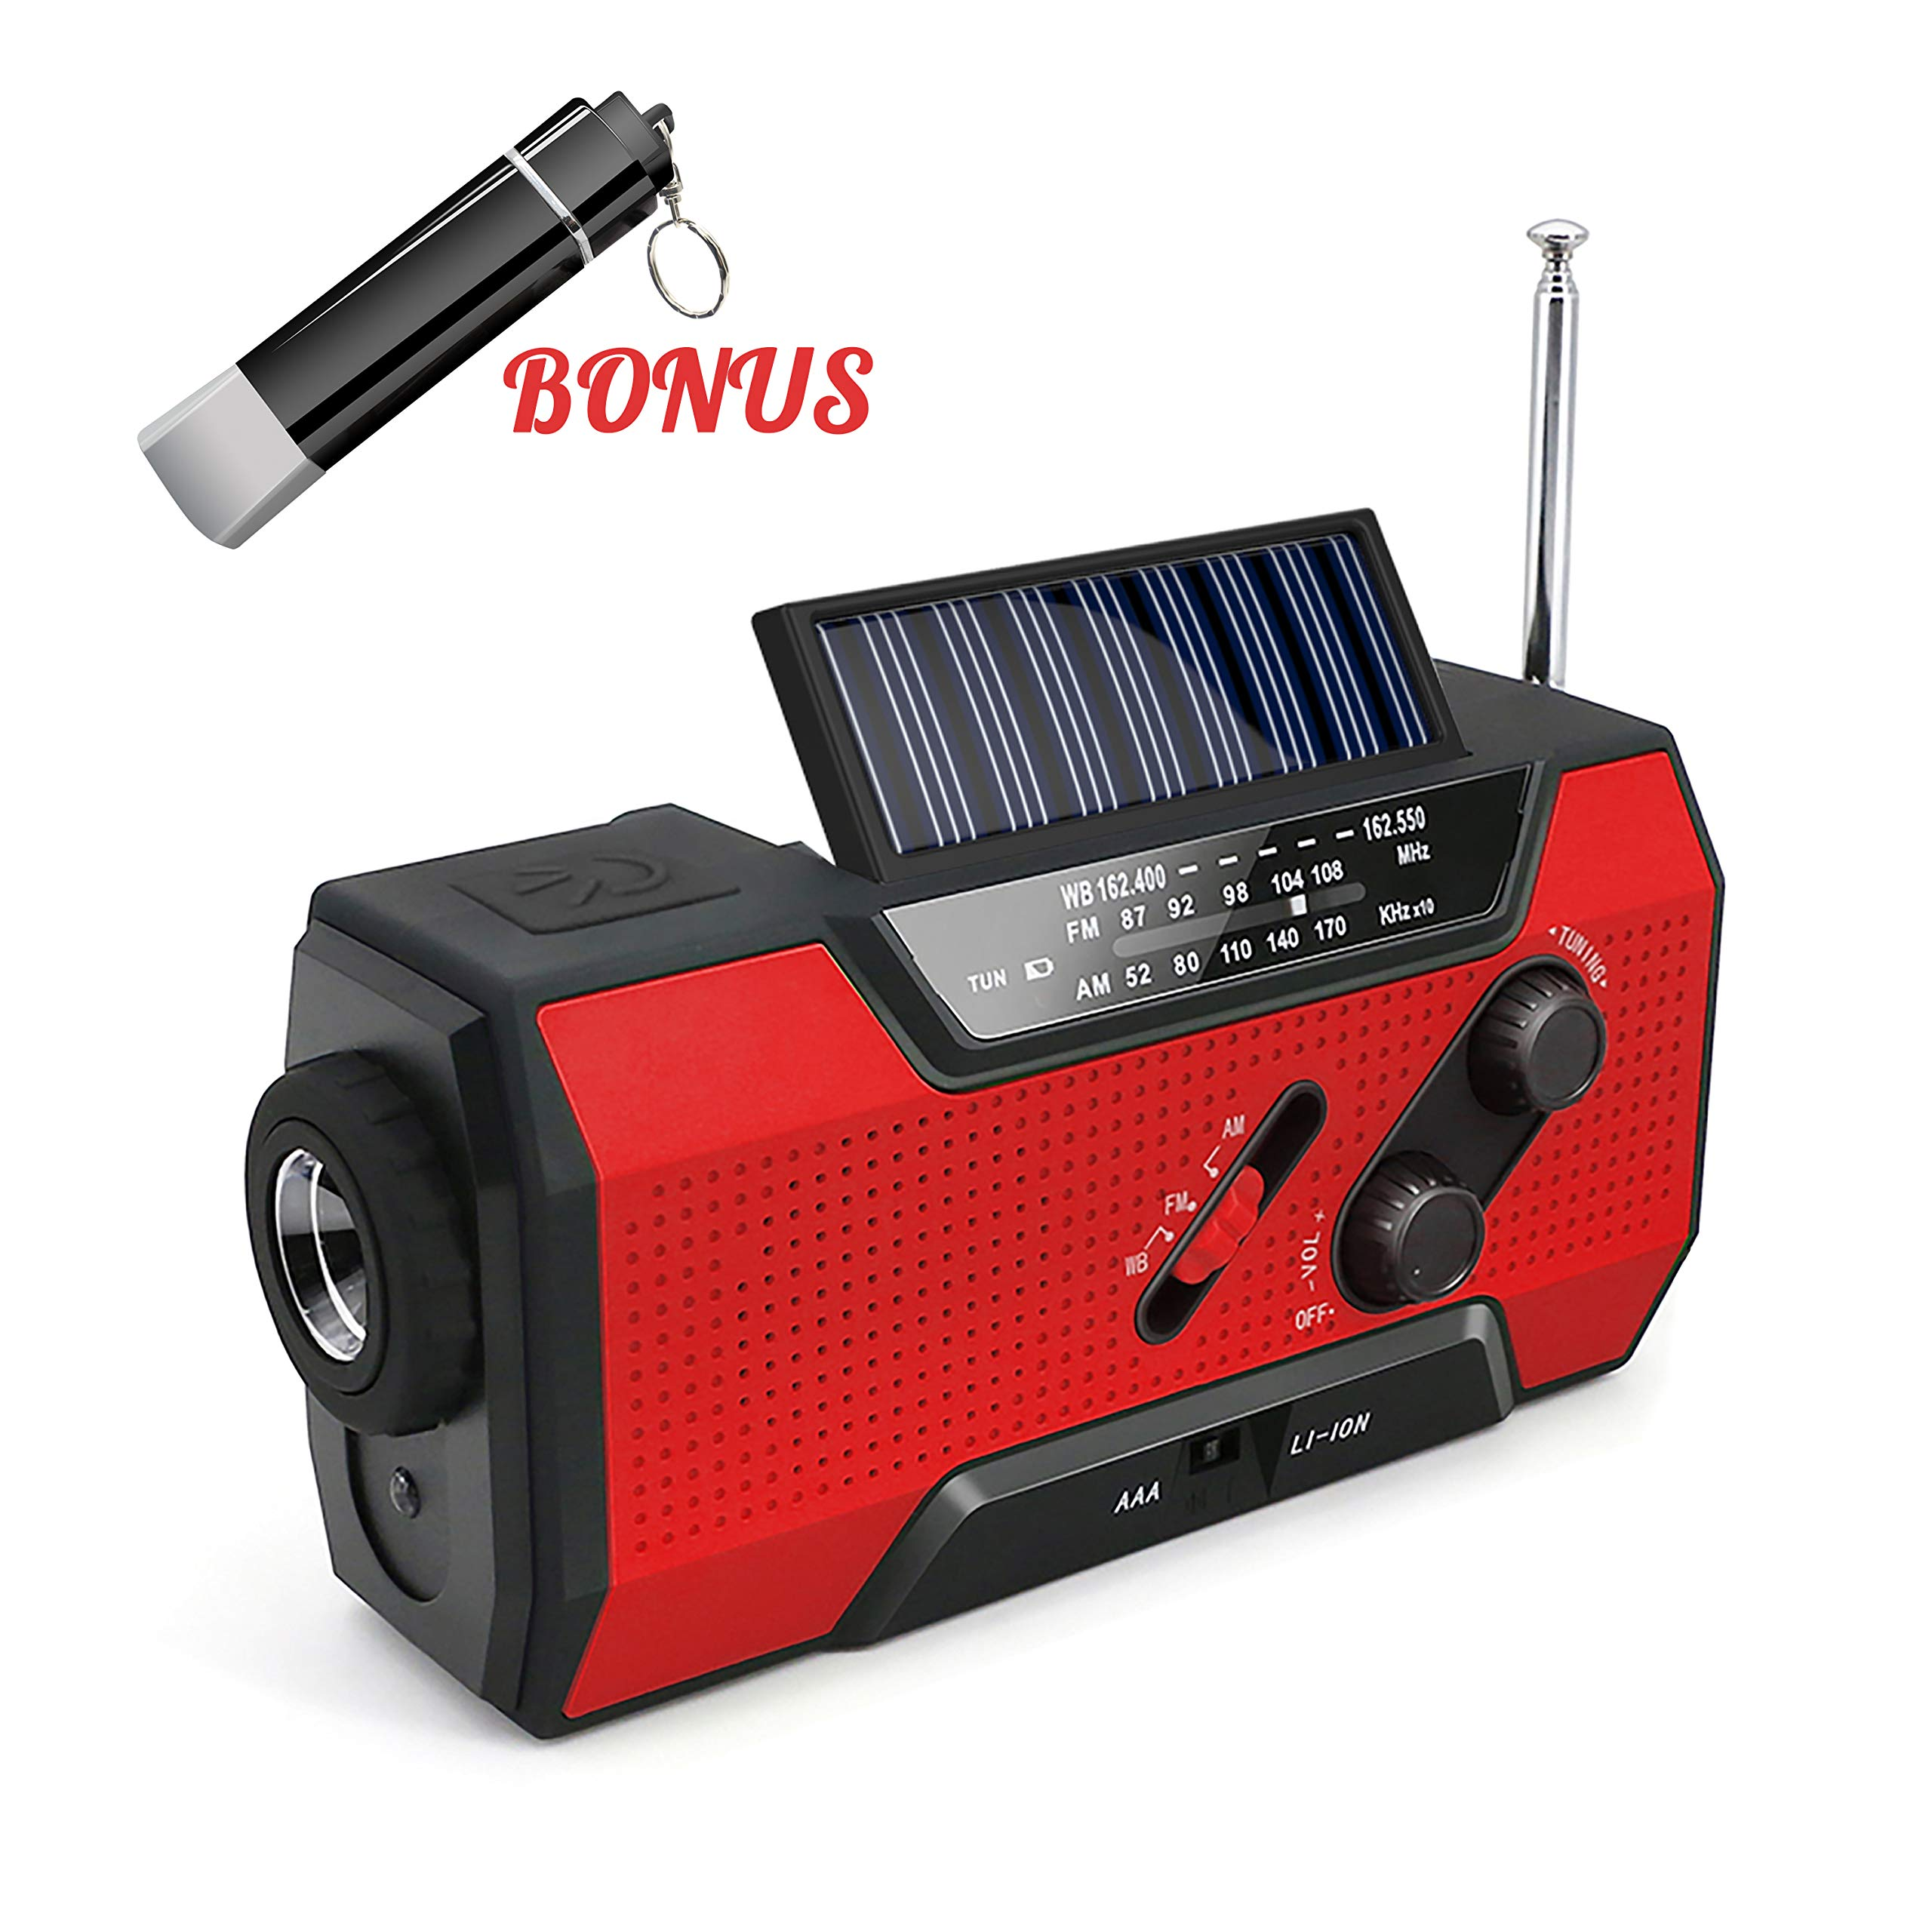 Emergency Rechargeable Solar Crank AM/FM/NOAA/Weather Radio with Flashlight,2000 mAh Power Bank,SOS Alarm, Reading Lamp,Phone Charger for Tornadoes Hurricanes,and Storms